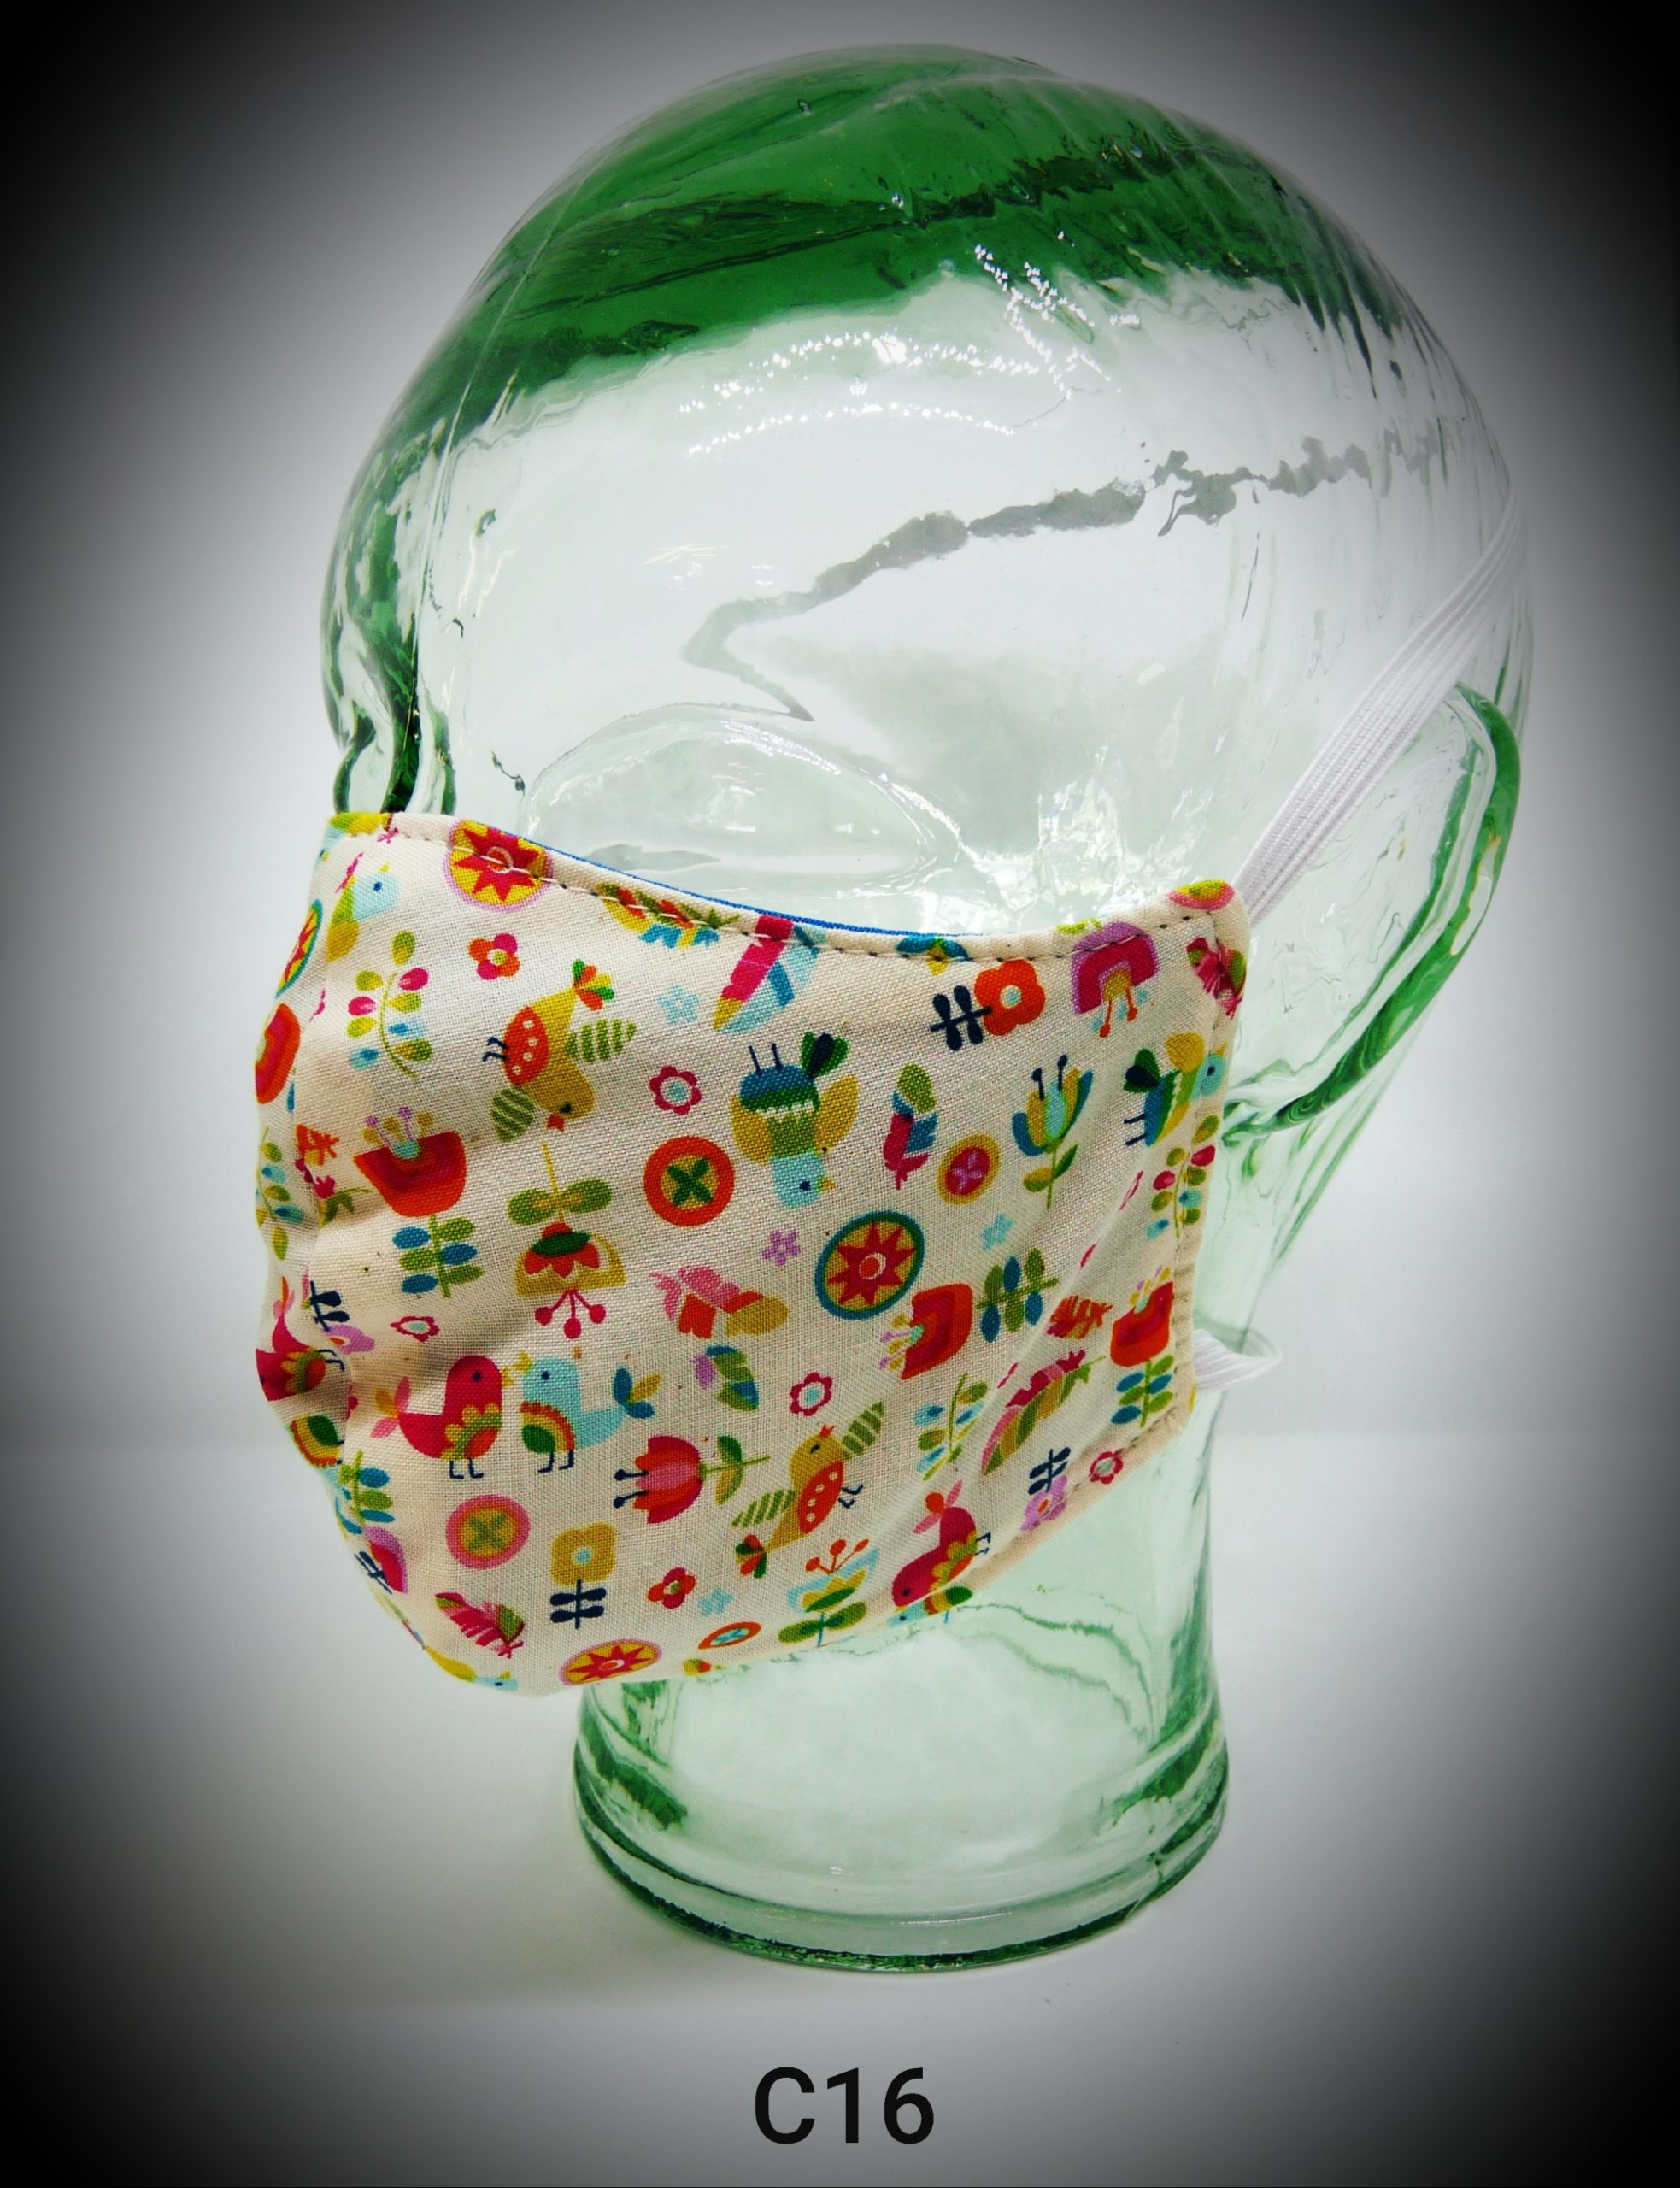 face mask washable reusable ppe c16 pretty garden fabric